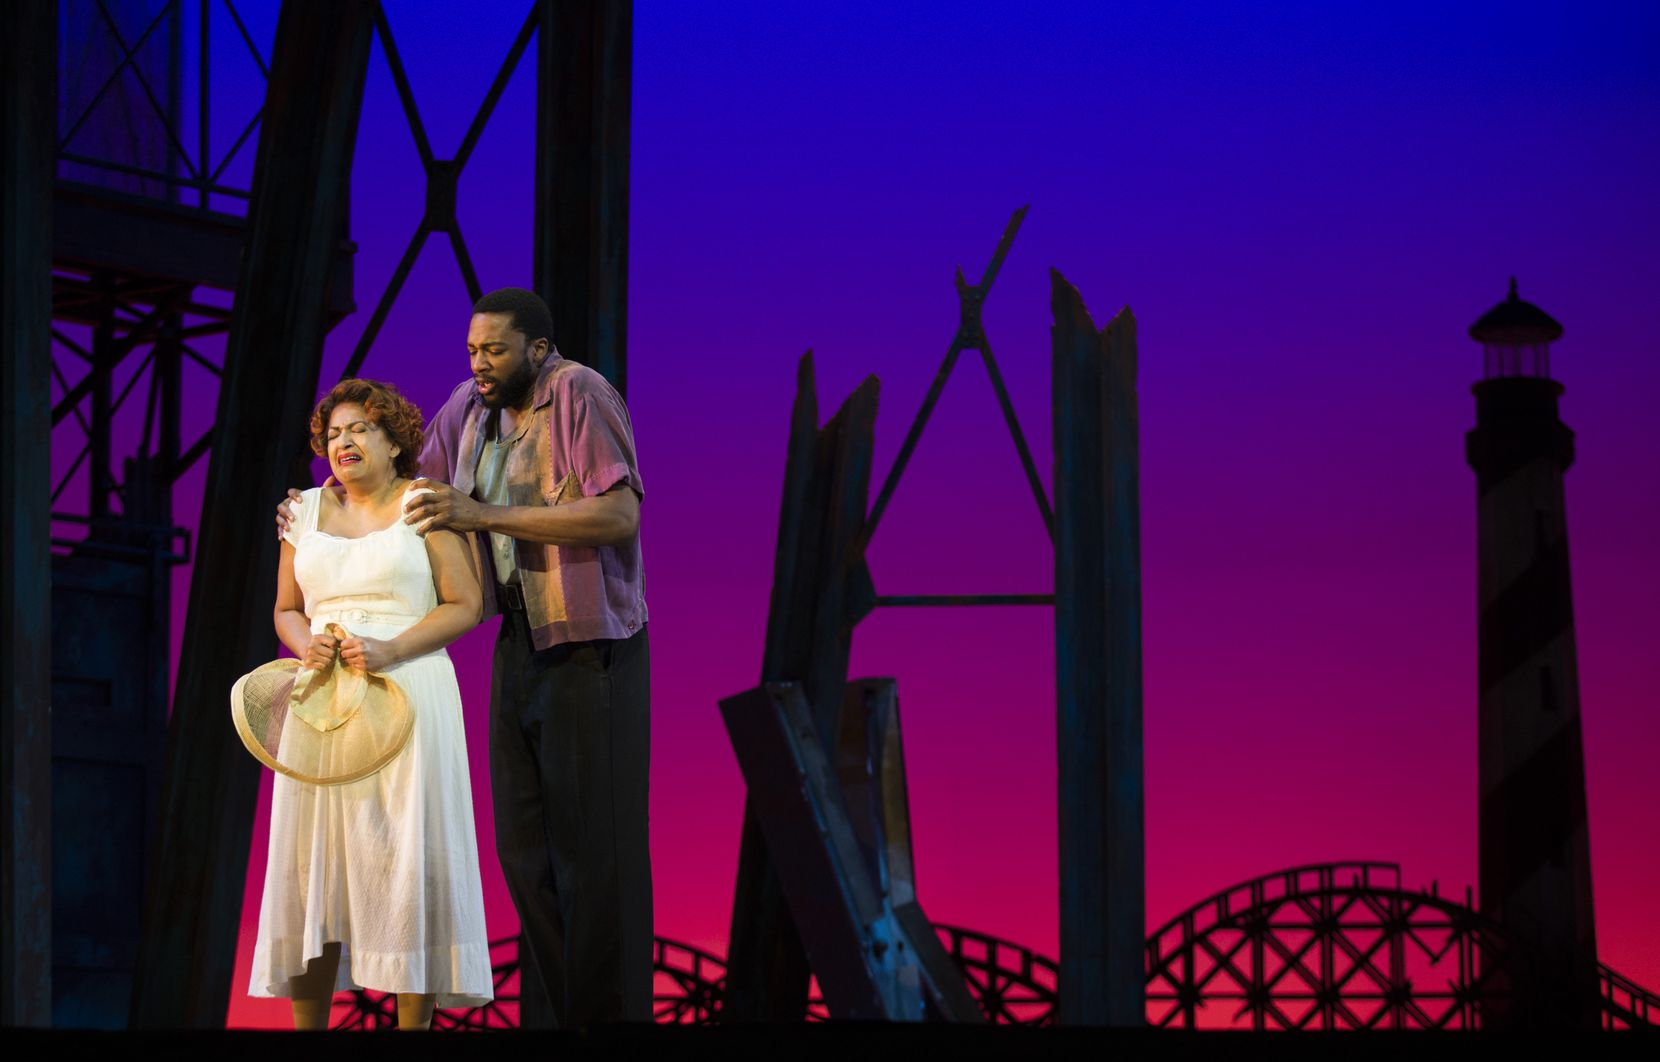 """Indira Mahajan and Norman Garrett performed during a dress rehearsal of the Fort Worth Opera's production of Gershwin's """"Porgy and Bess"""" on April 24, 2019, at Bass Concert Hall in Fort Worth."""